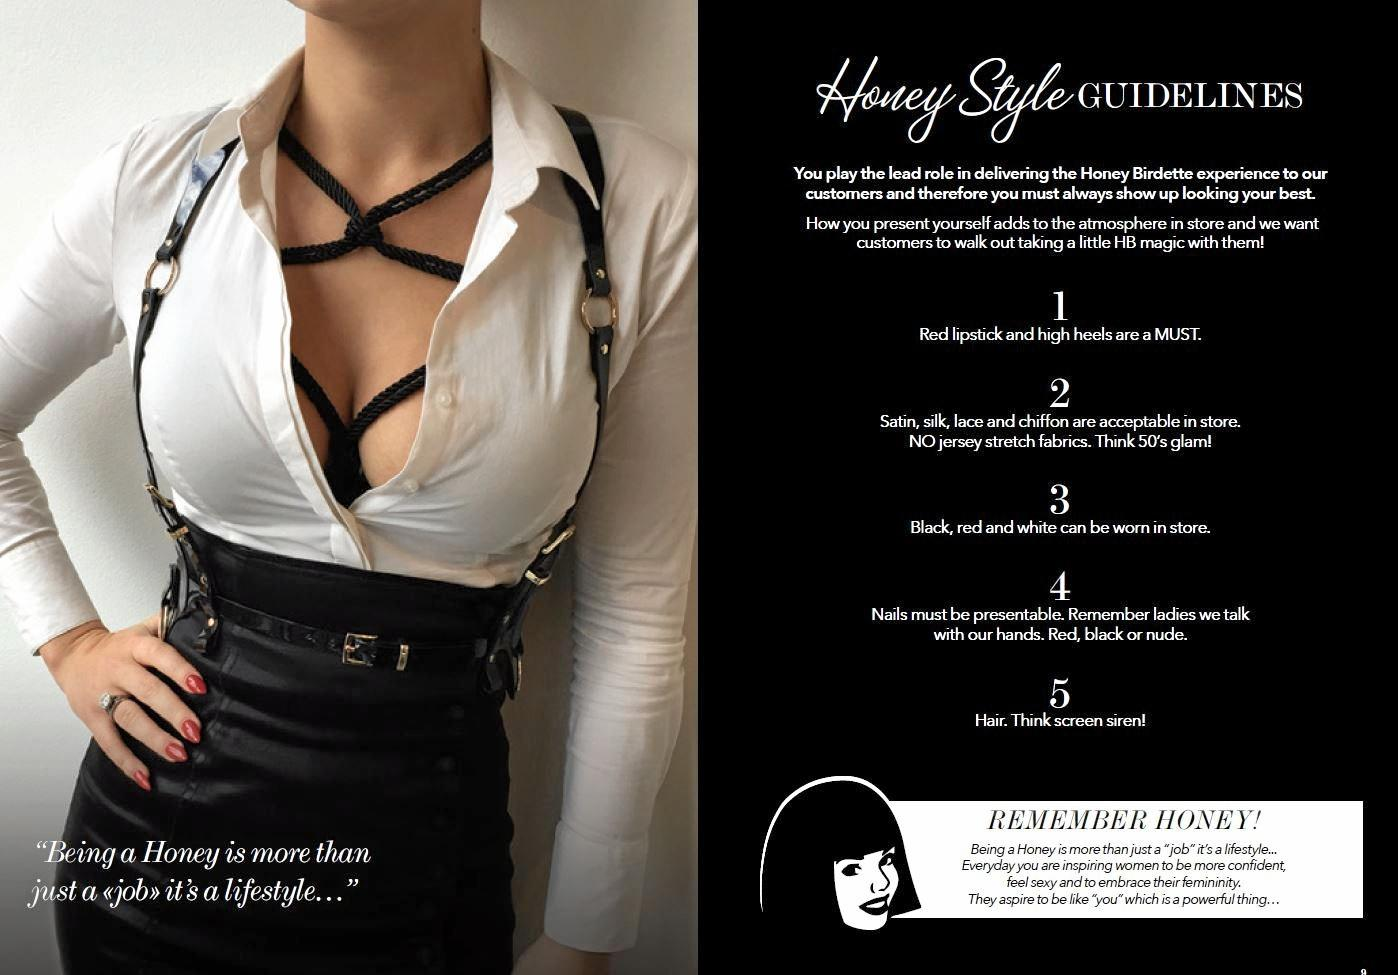 A snippet out of Honey Birdette's 'Llittle Black Book' for employees.